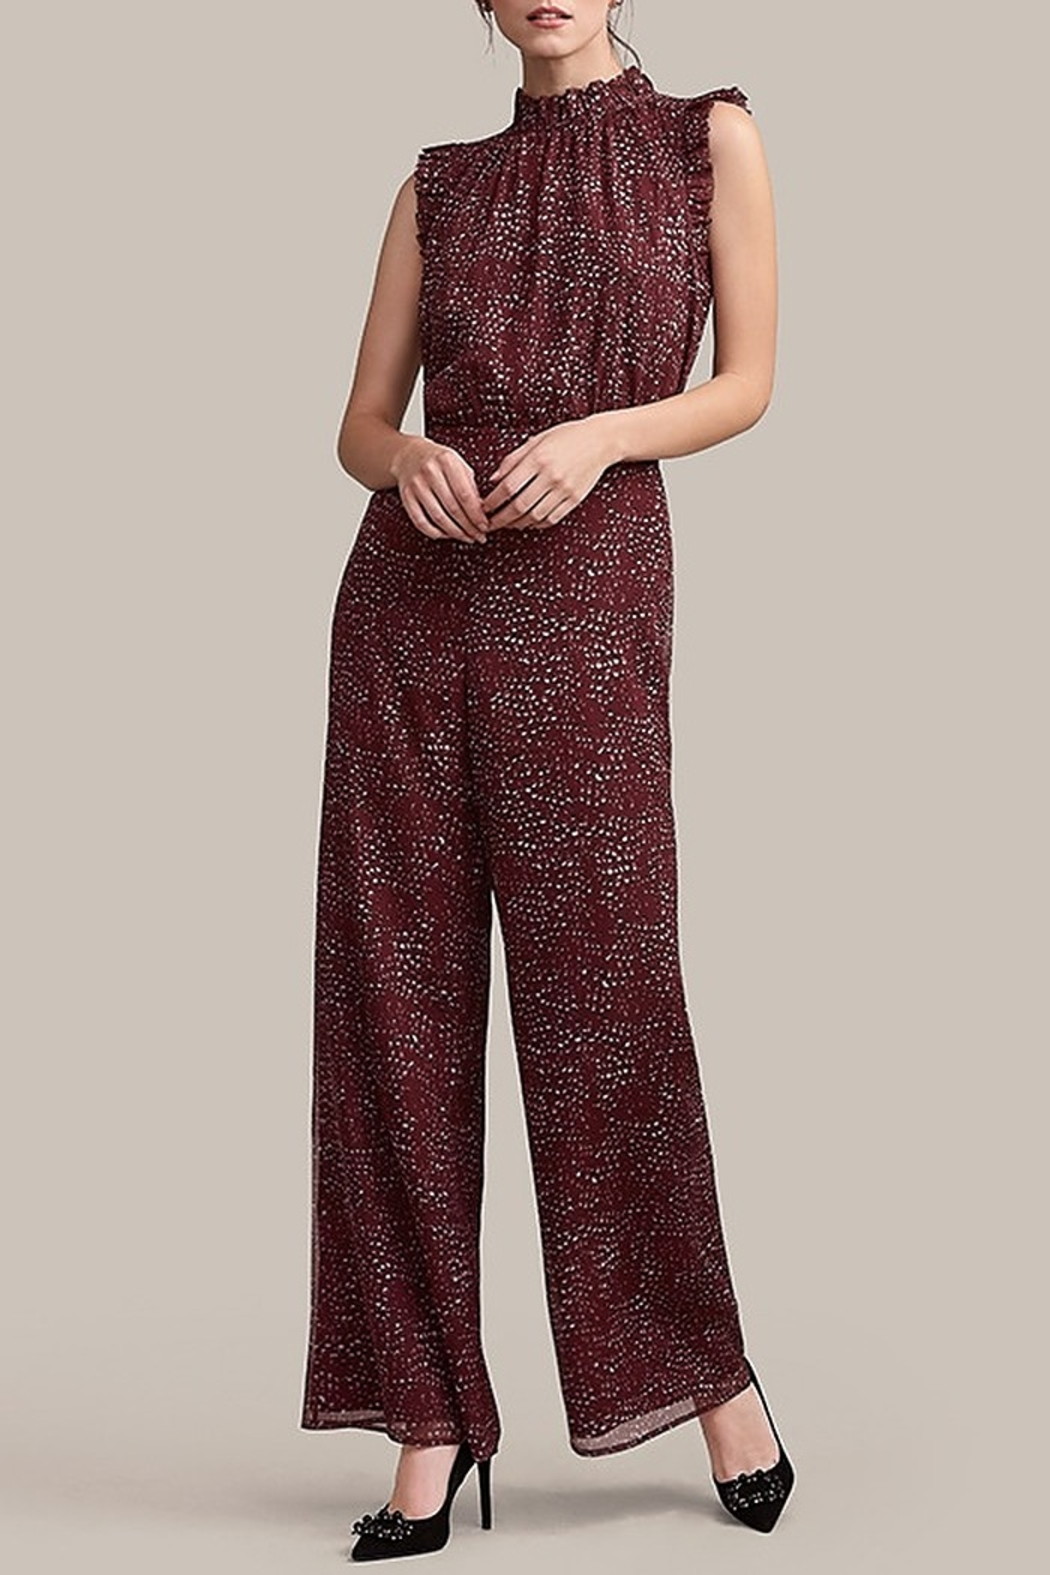 Ali & Jay It's You Girl Jumpsuit - Main Image